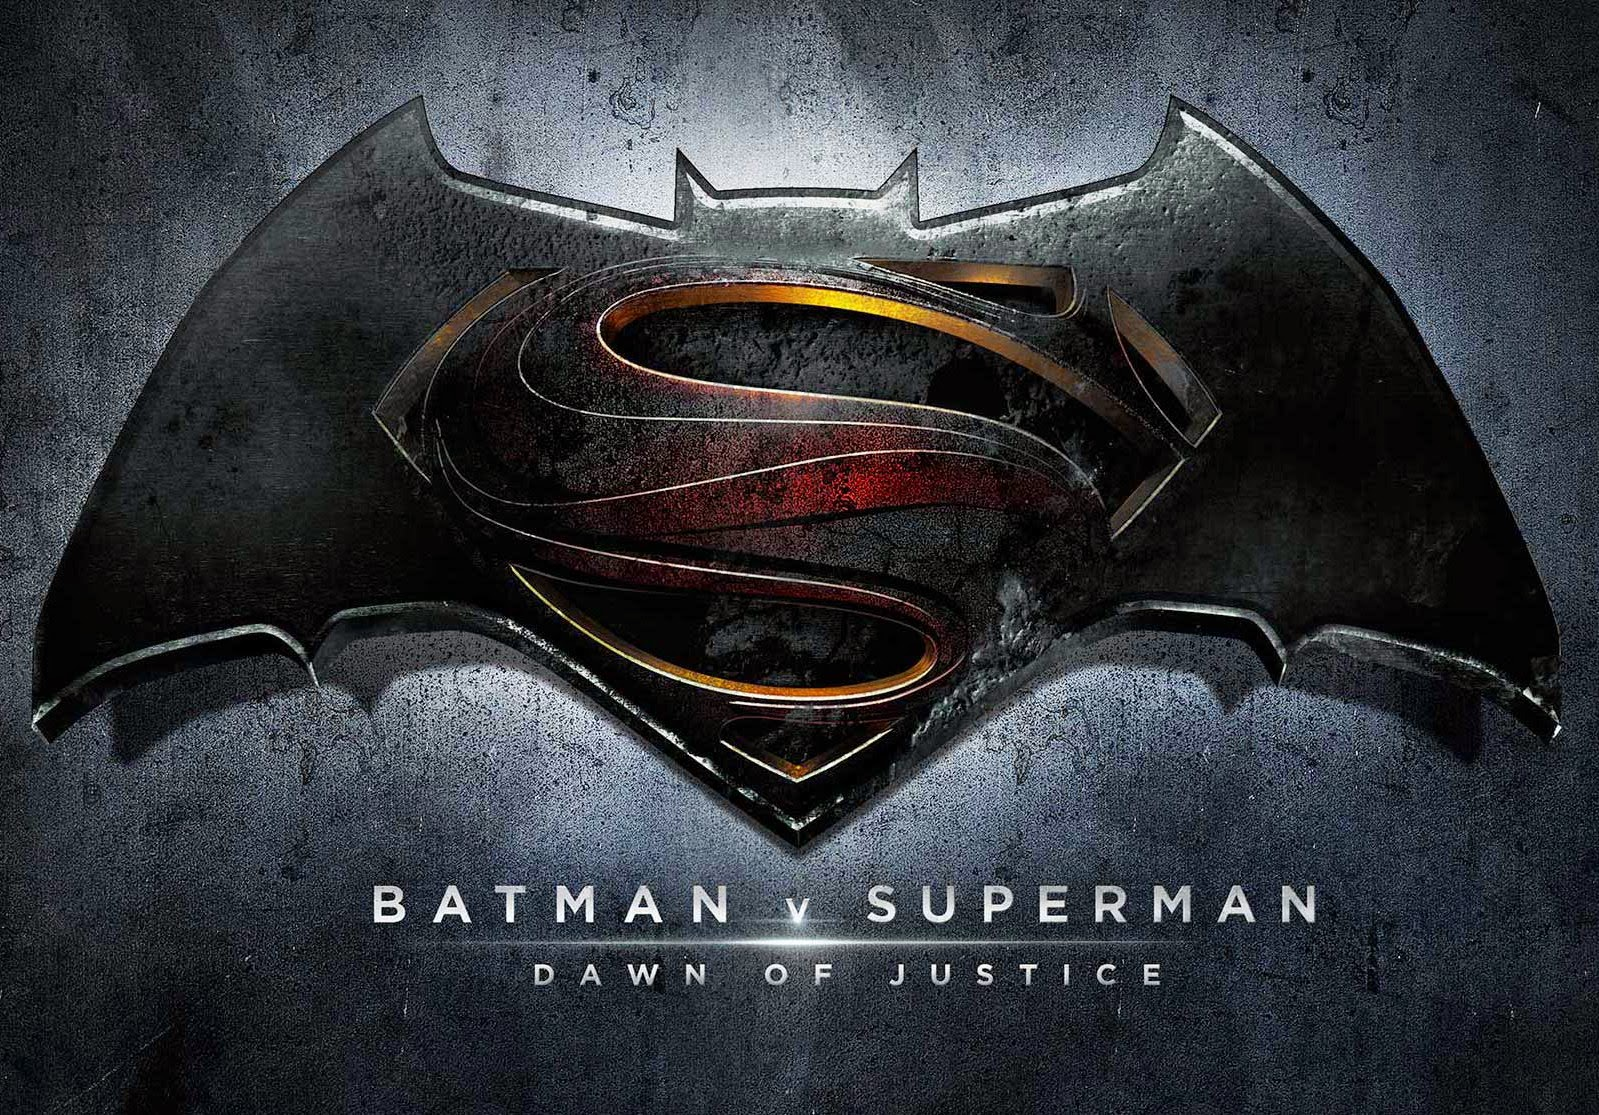 Batman v Superman: Dawn of Justice - First Trailer